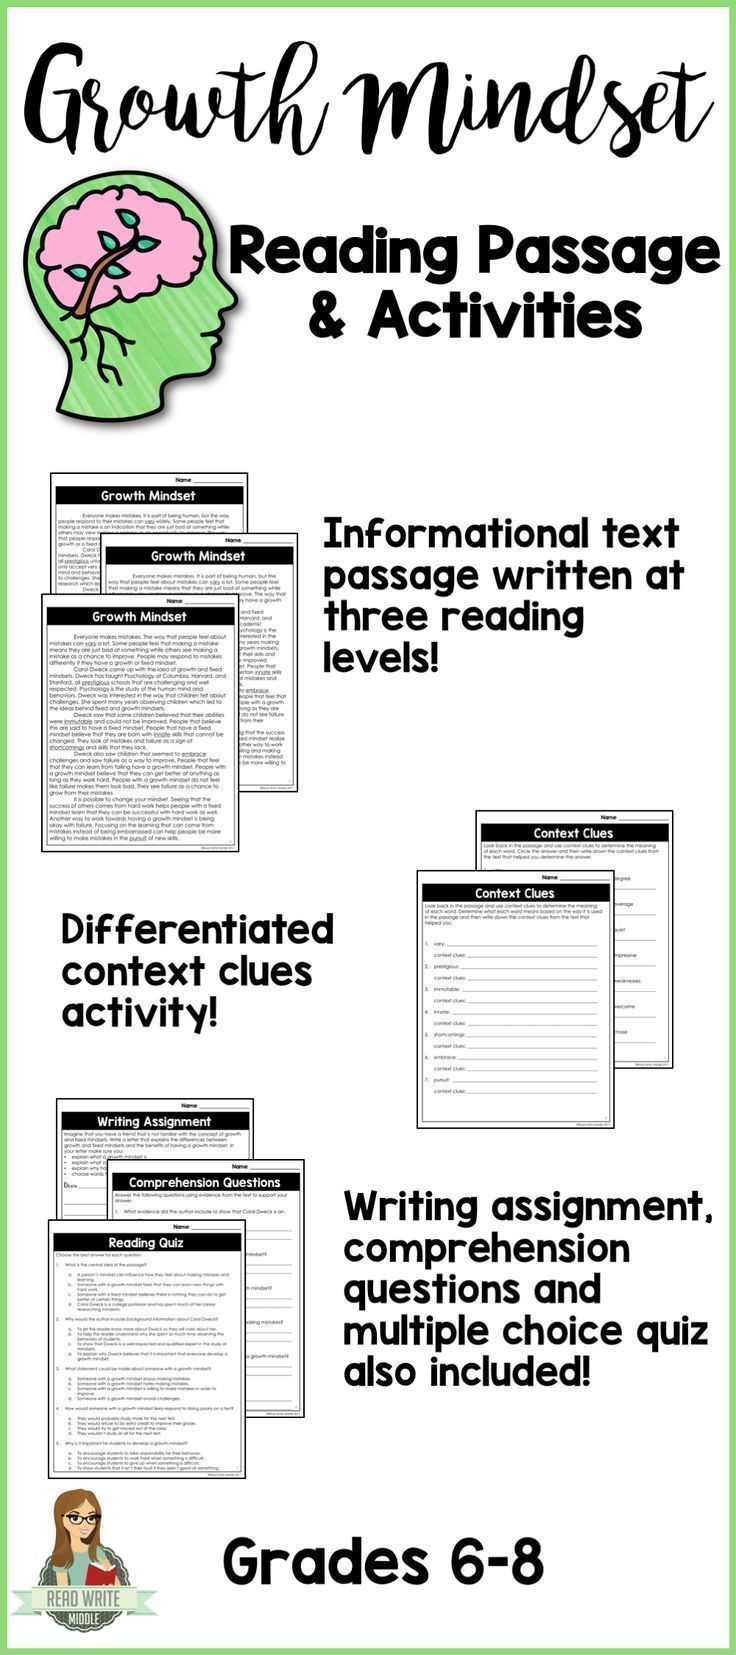 Differentiated growth mindset reading passage!